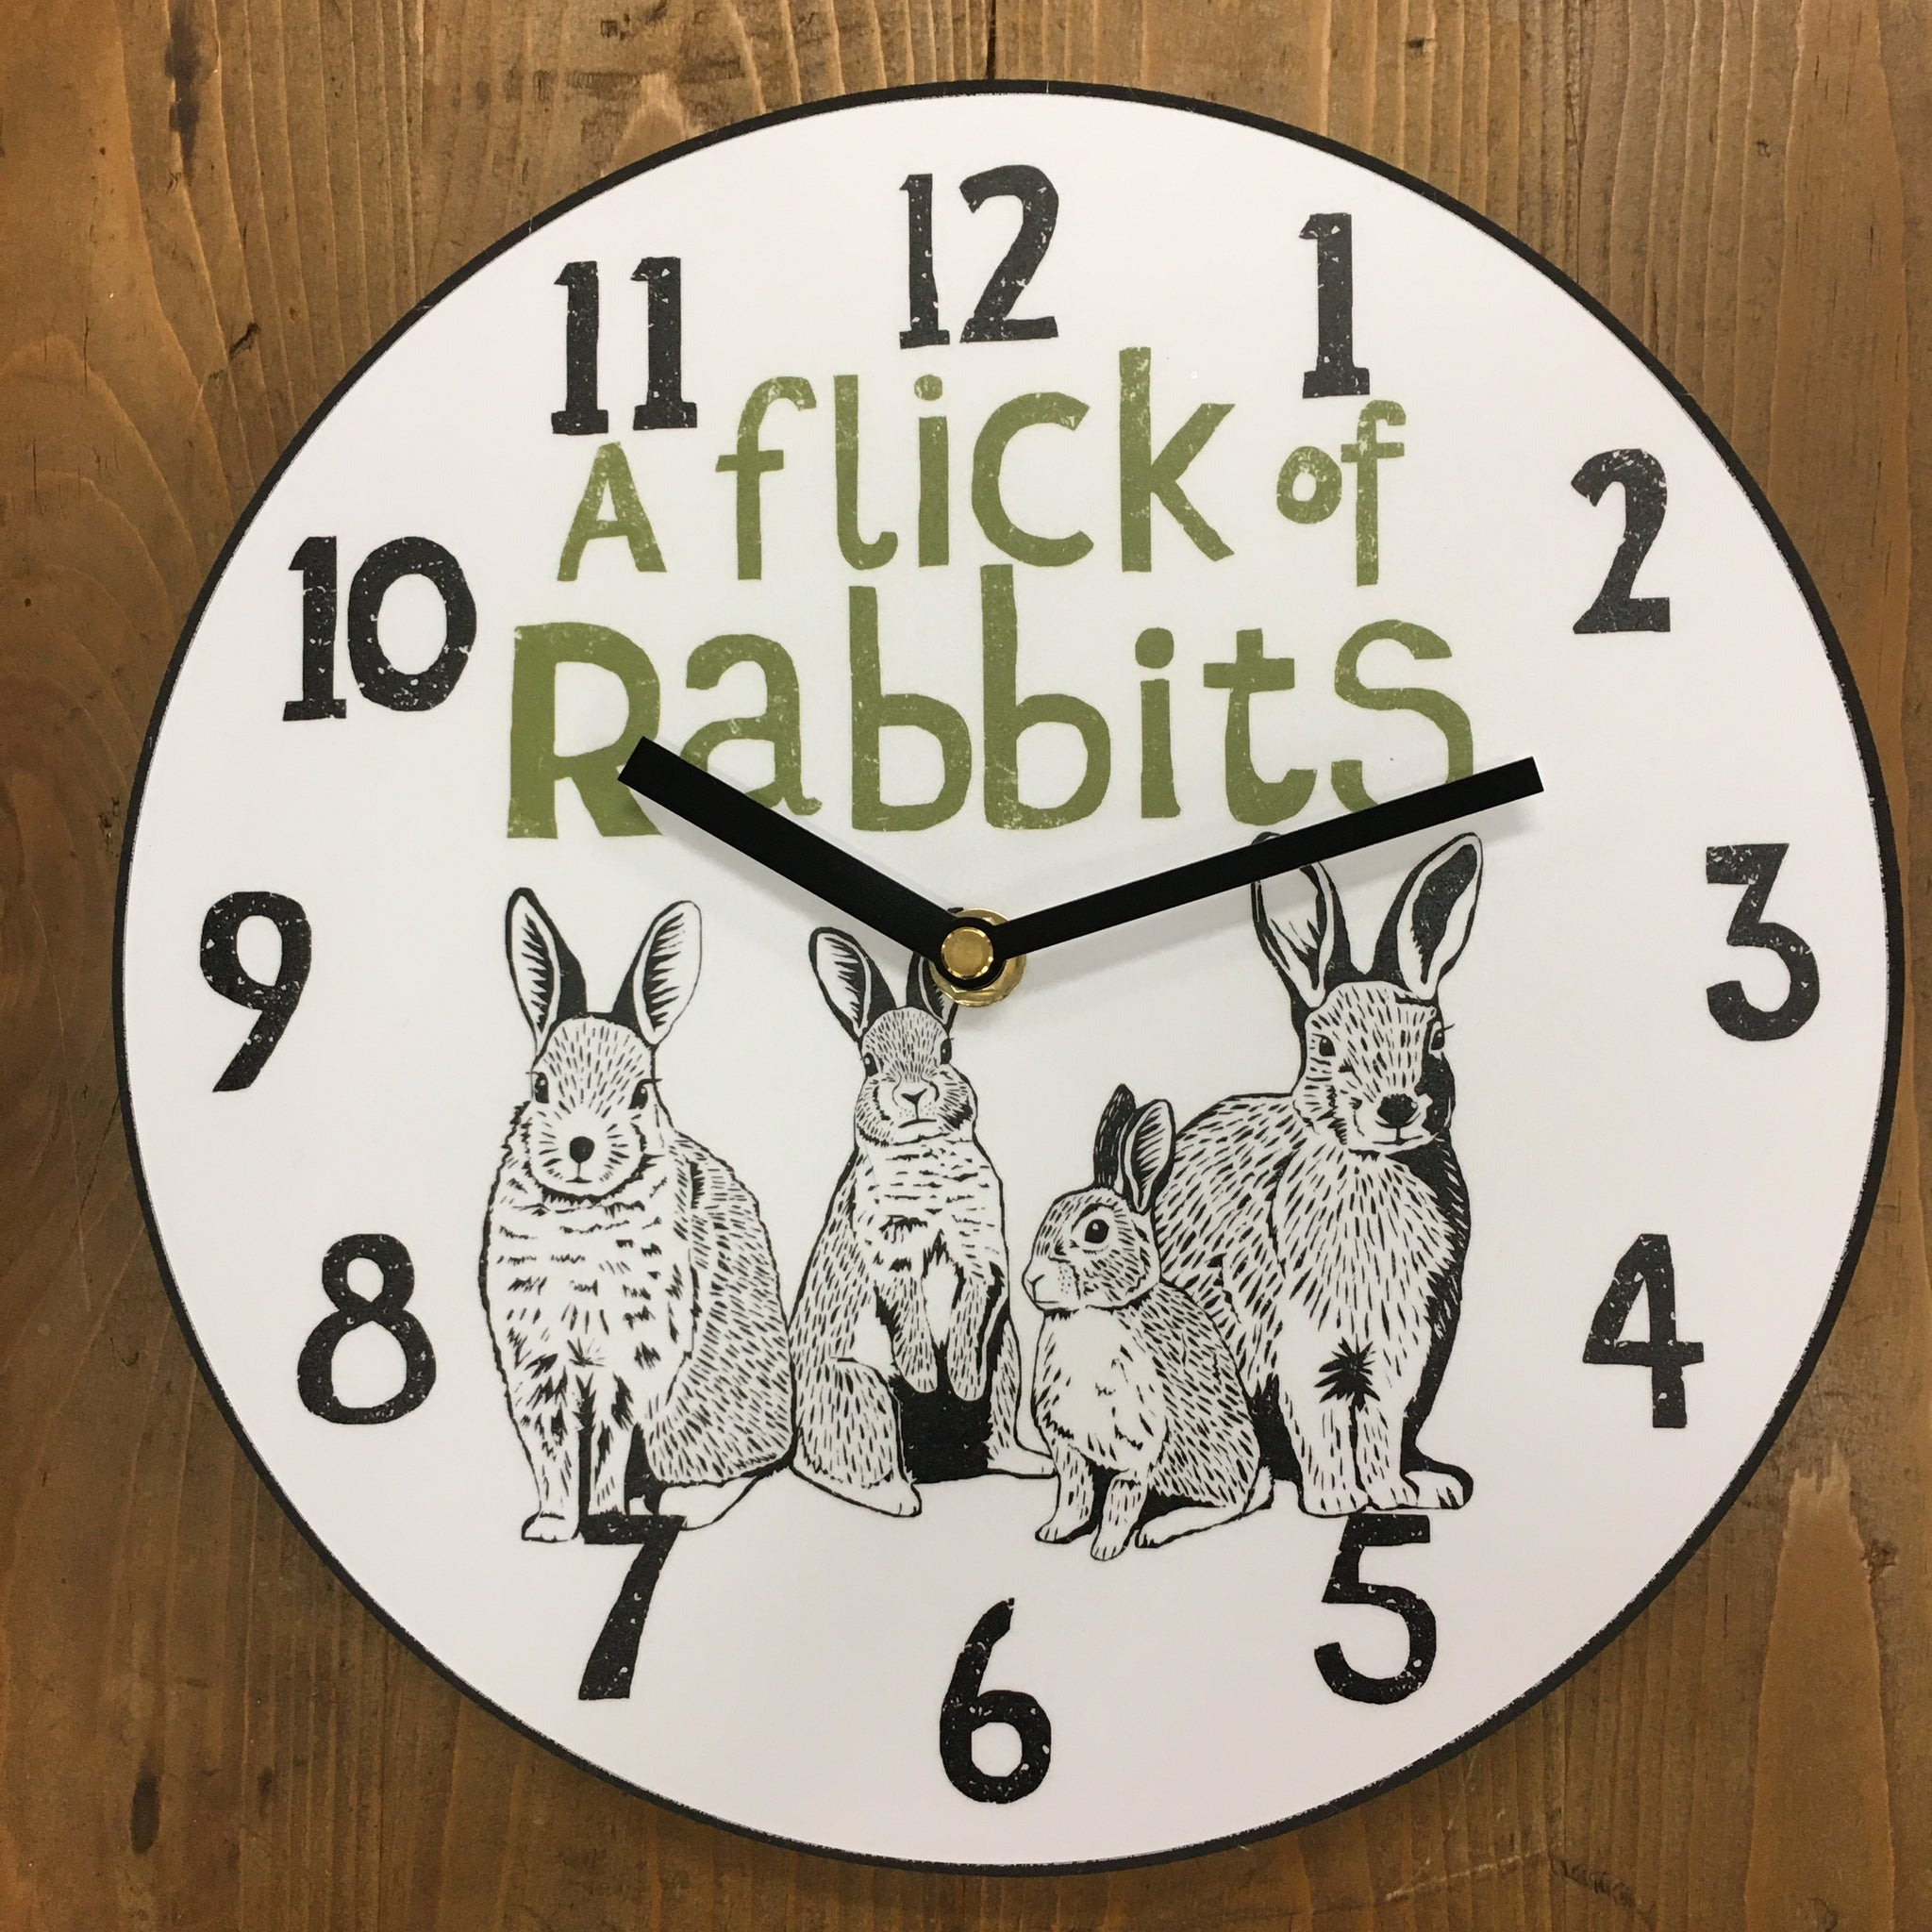 Flick of Rabbits Clock - by Perkins and Morley